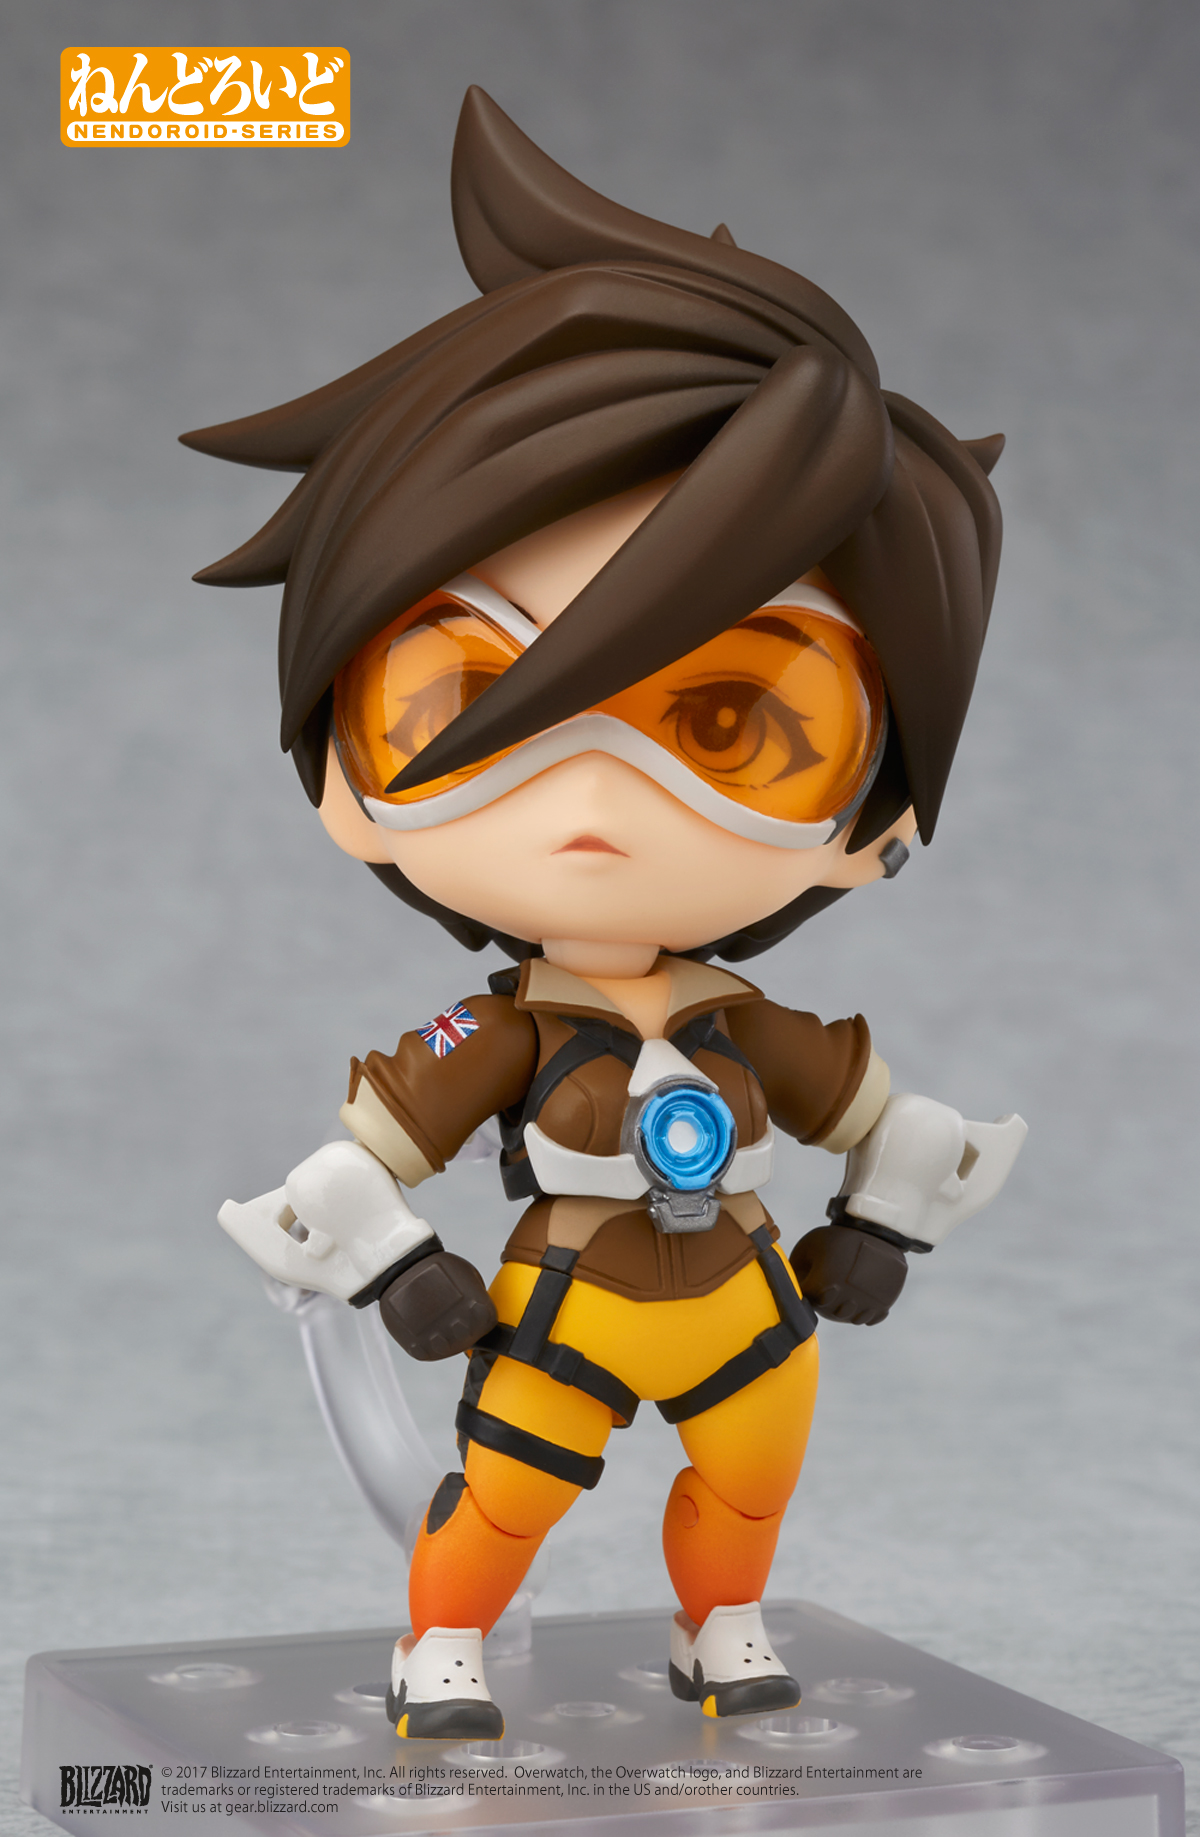 Super Cute Overwatch Nendoroid Toys Coming Starting With